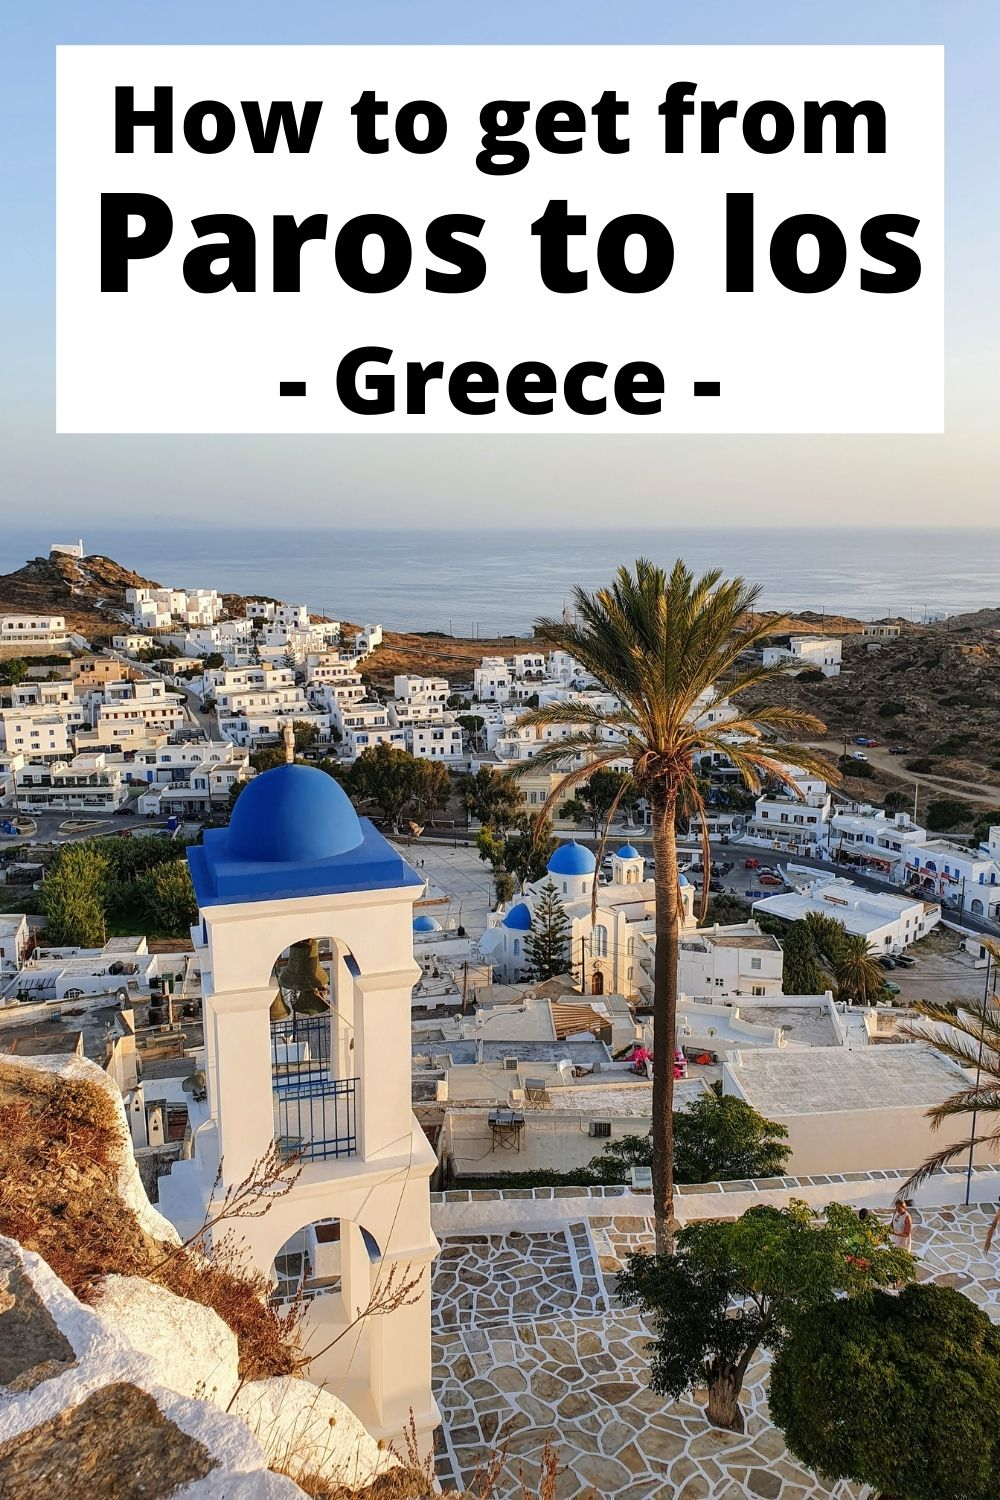 How to get from Paros to Ios island in Greece by ferry